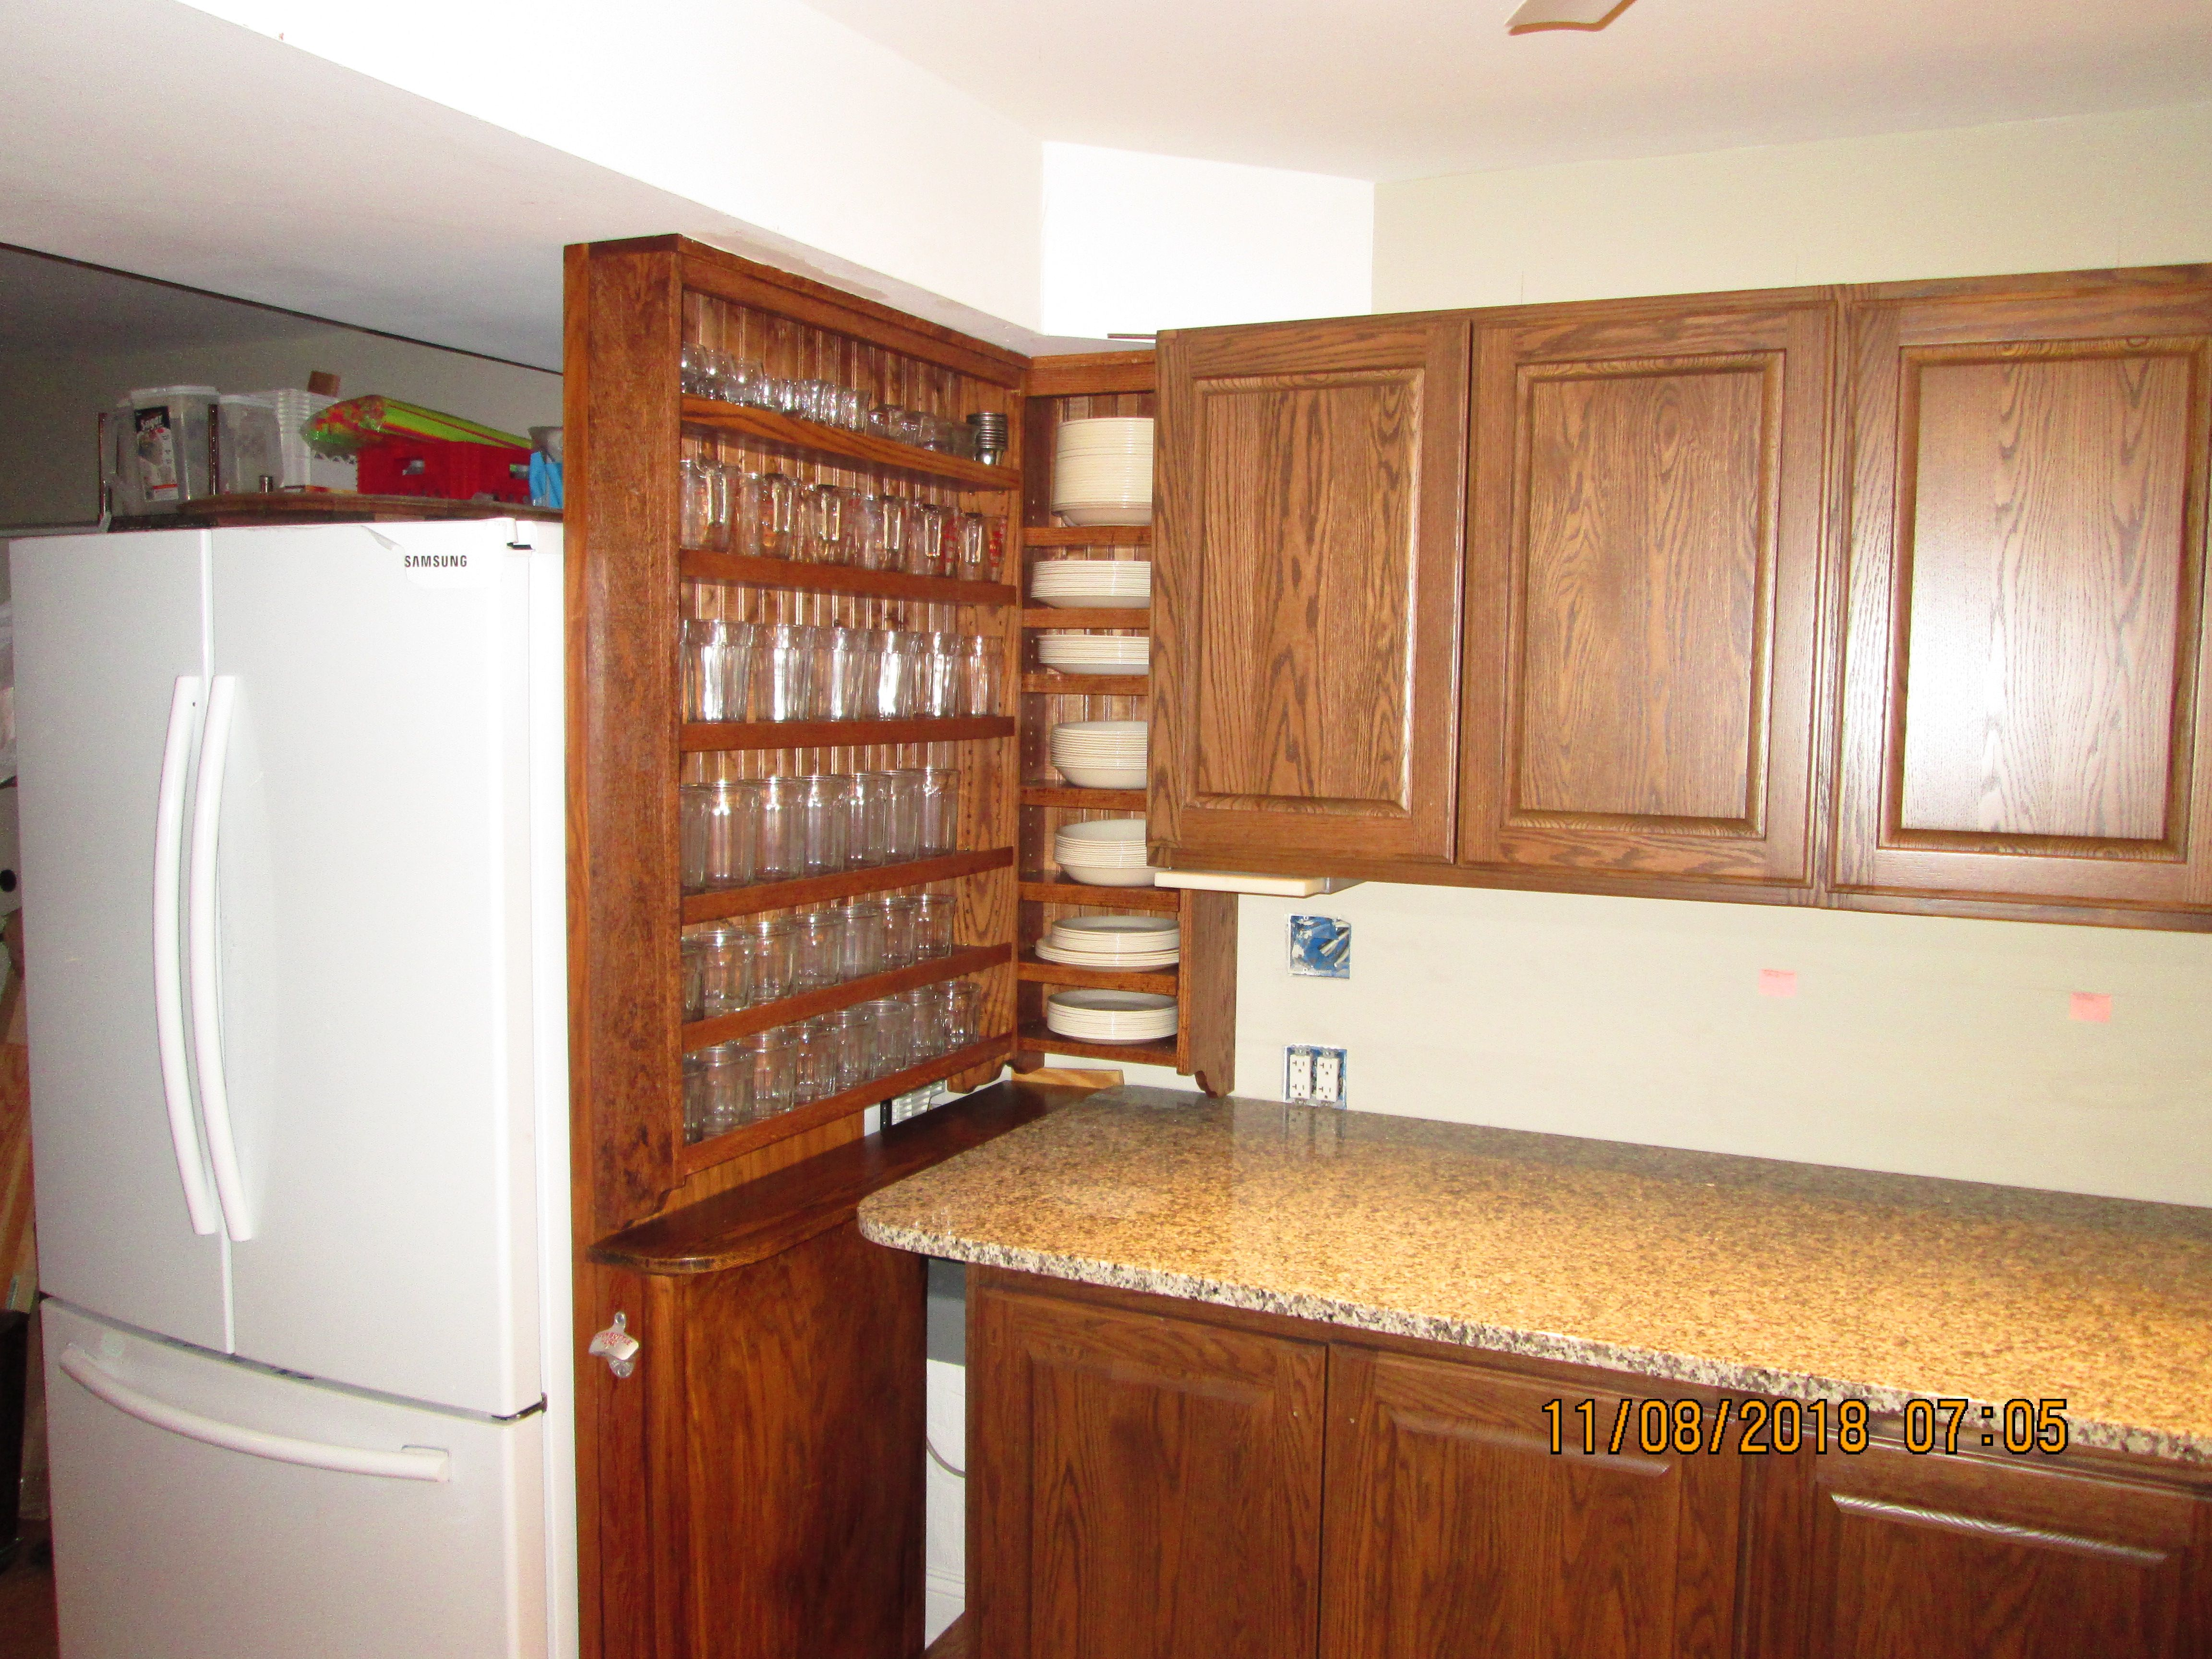 Kitchenette After The Two Midwest Classic Furniture Crafts Special Order Open Shelf Wall Cabinets Were Installe Wall Cabinet Open Shelving Classic Furniture